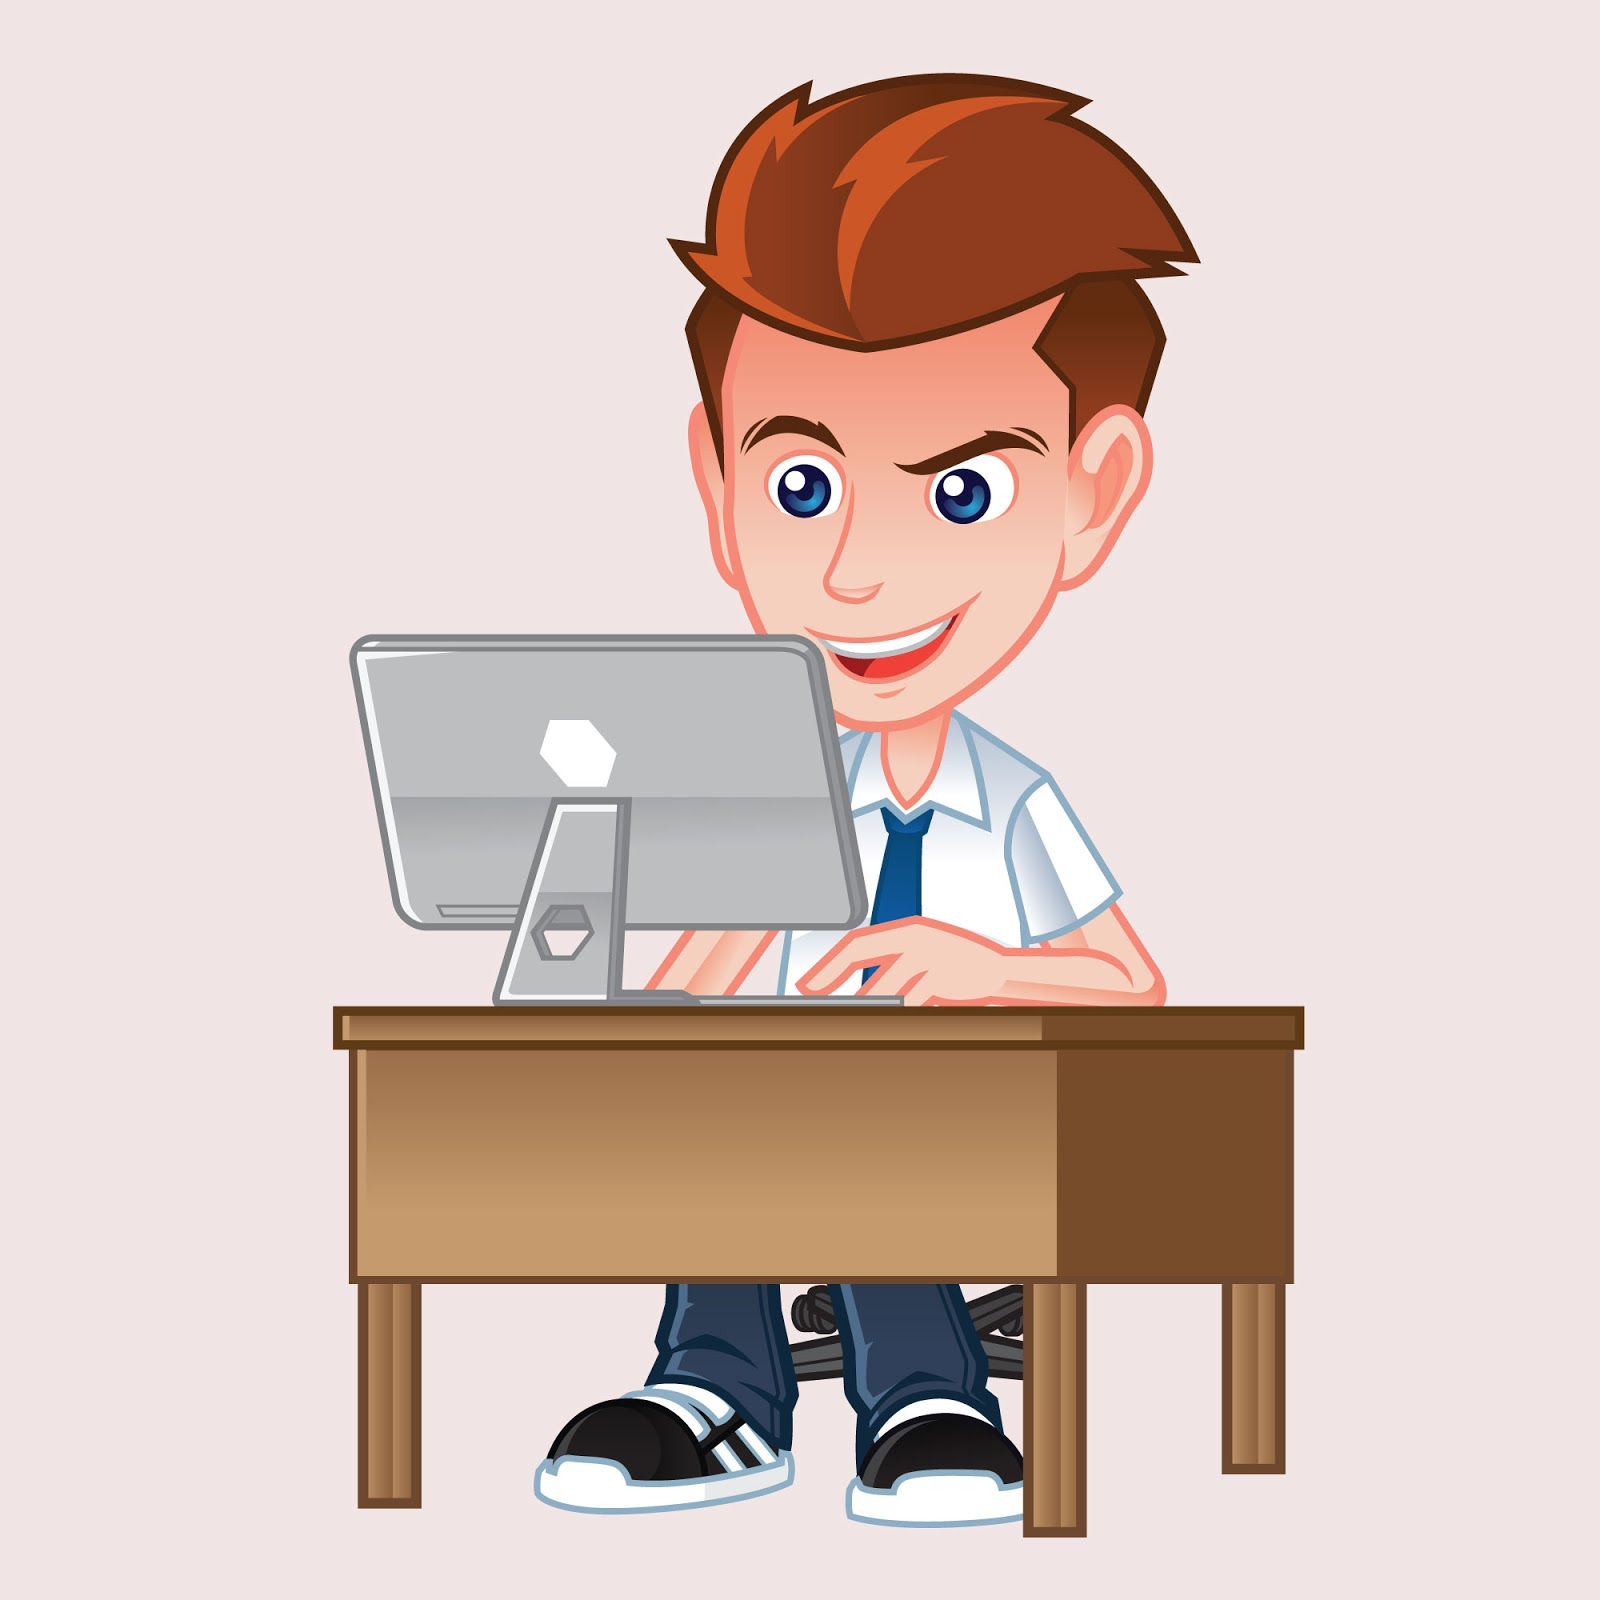 Programmer Mascot Illustration Free Download Vector CDR, AI, EPS and PNG Formats